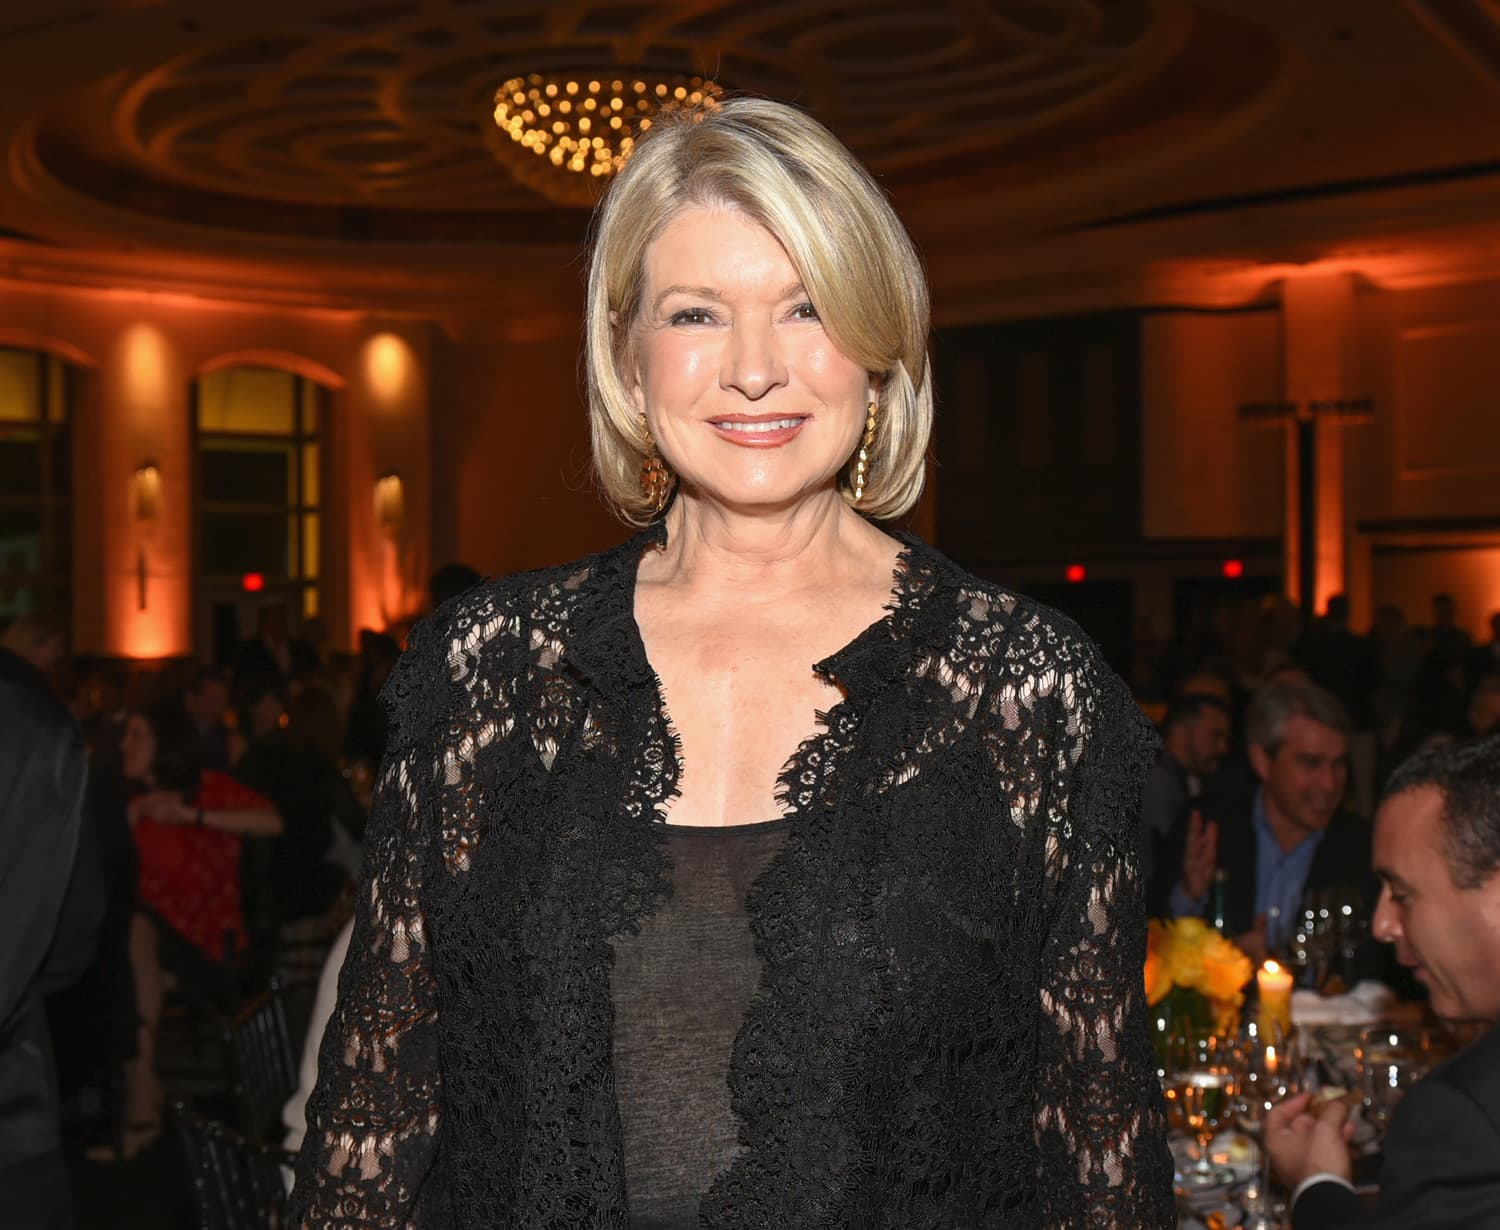 Martha Stewart's New Weird, but Delightful Party Trick Is Stacking Wine Glasses, I Guess?